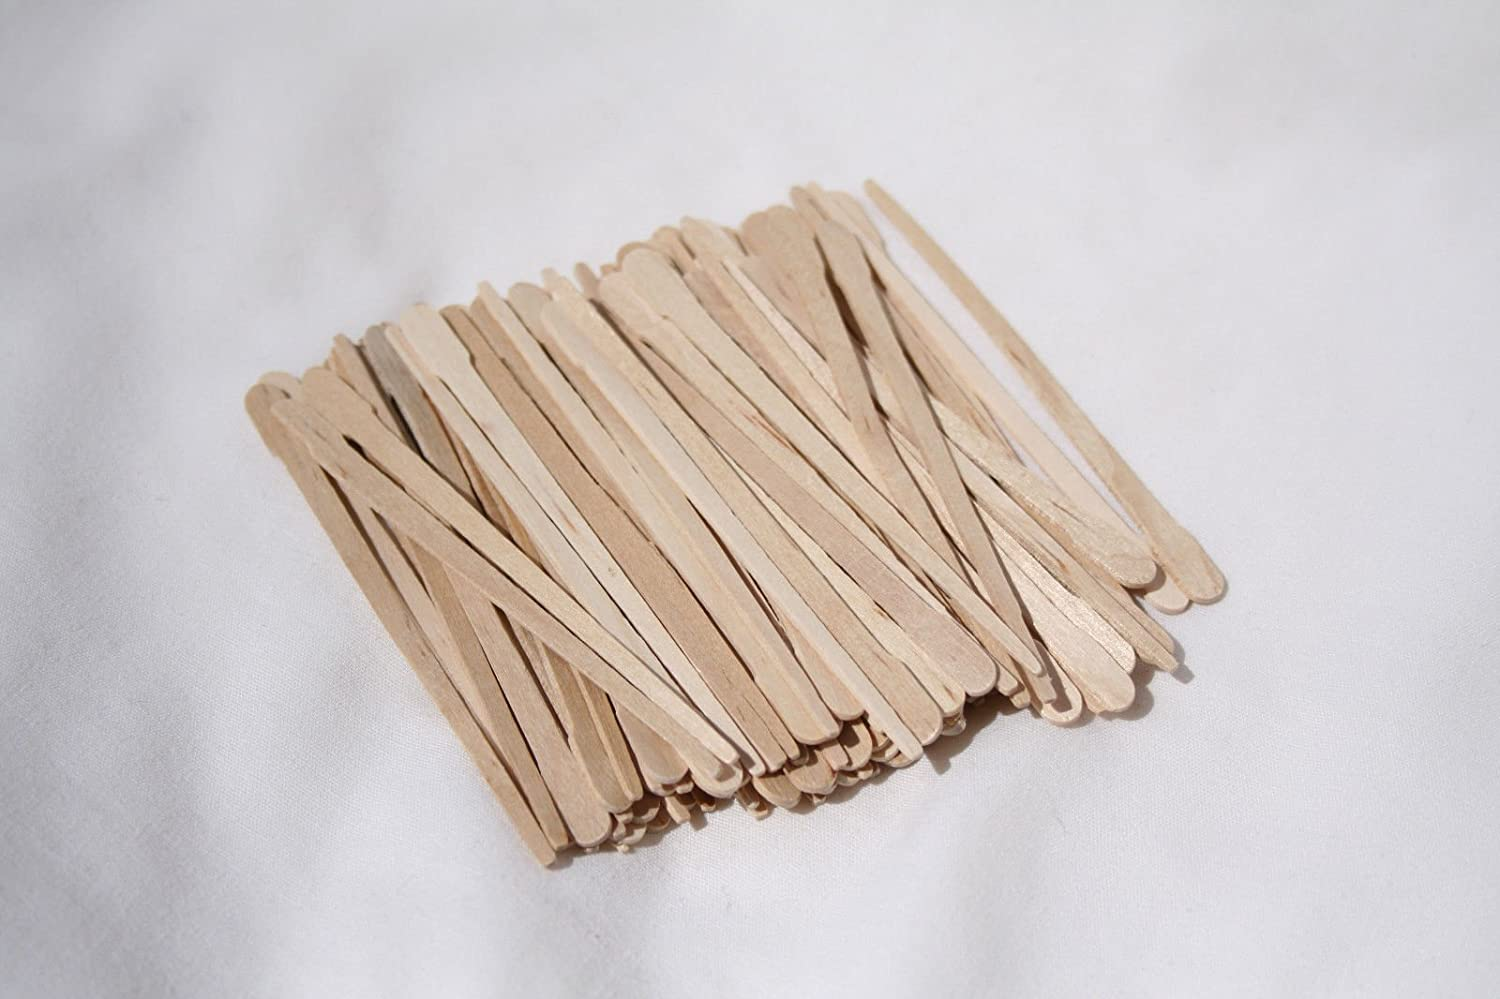 """300- Pieces EXTRA SMALL WAXING STICKS Wax Applicator Craft Sticks for Hair Removal Eyebrow Wood Spatulas Applicator, Size: 3-1/2"""" x ¼"""" Dukal Spa"""